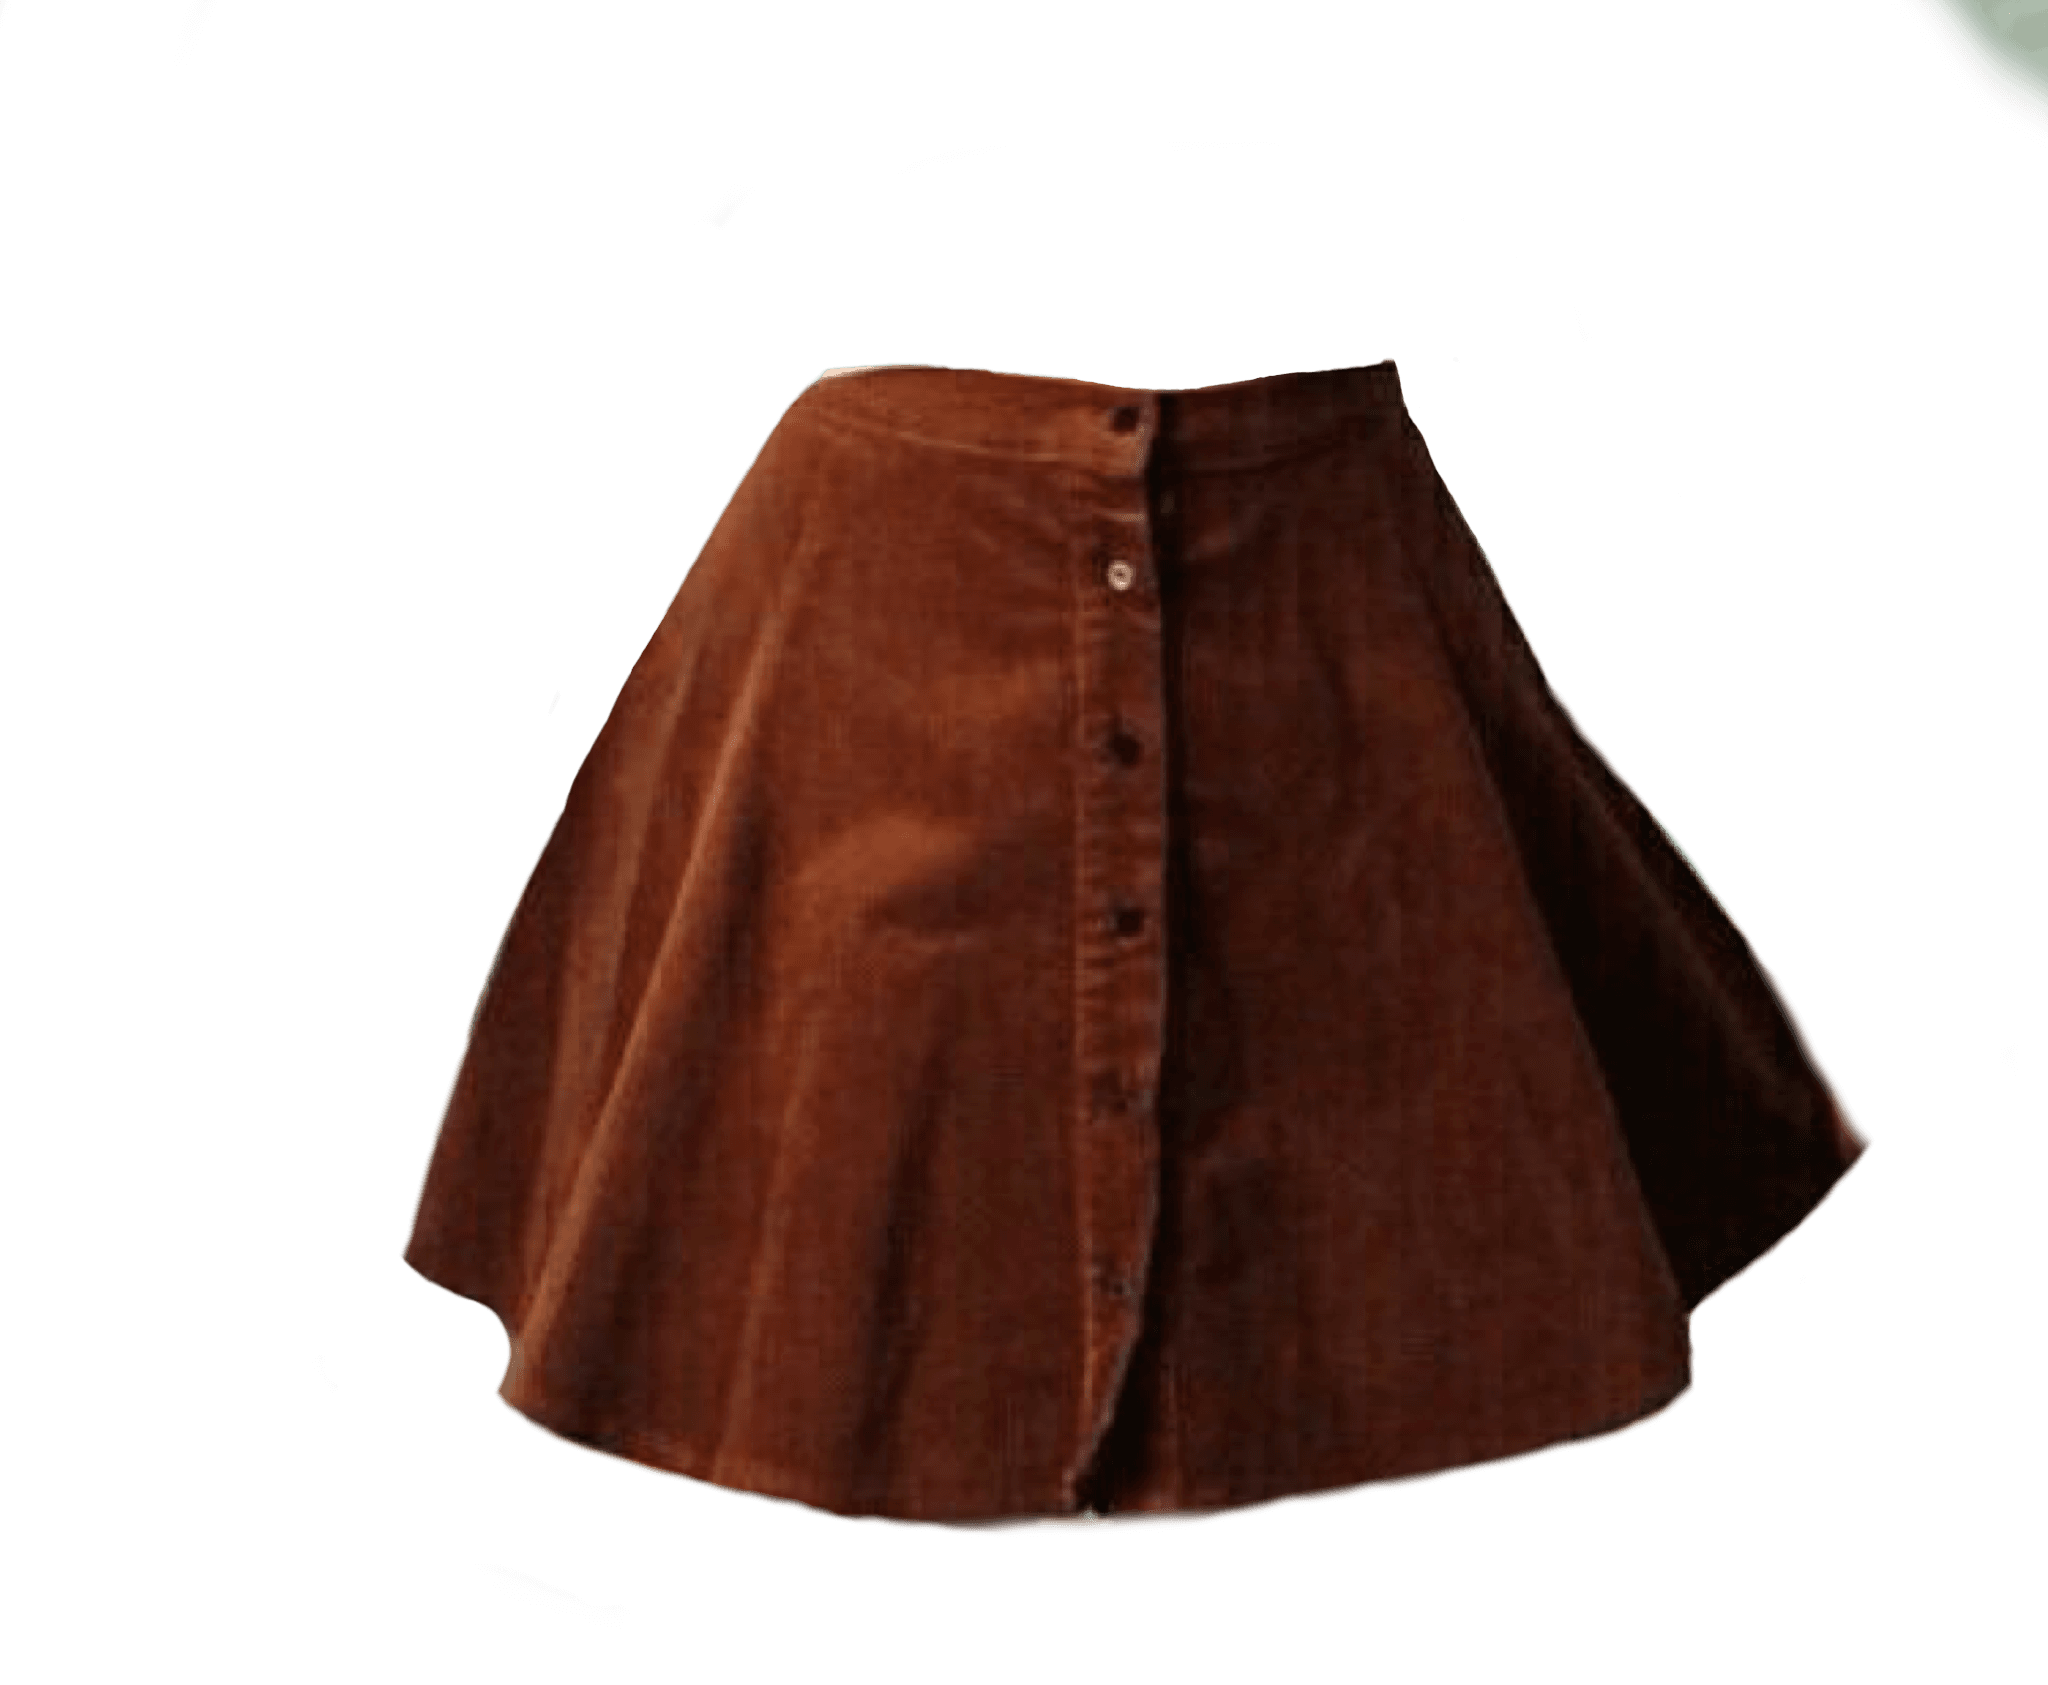 Brown skirt polyvore moodboard filler | moodboard, png, filler, minimal, overlay in 2018 | Pinterest | Skirts, Mood boards and Clothes